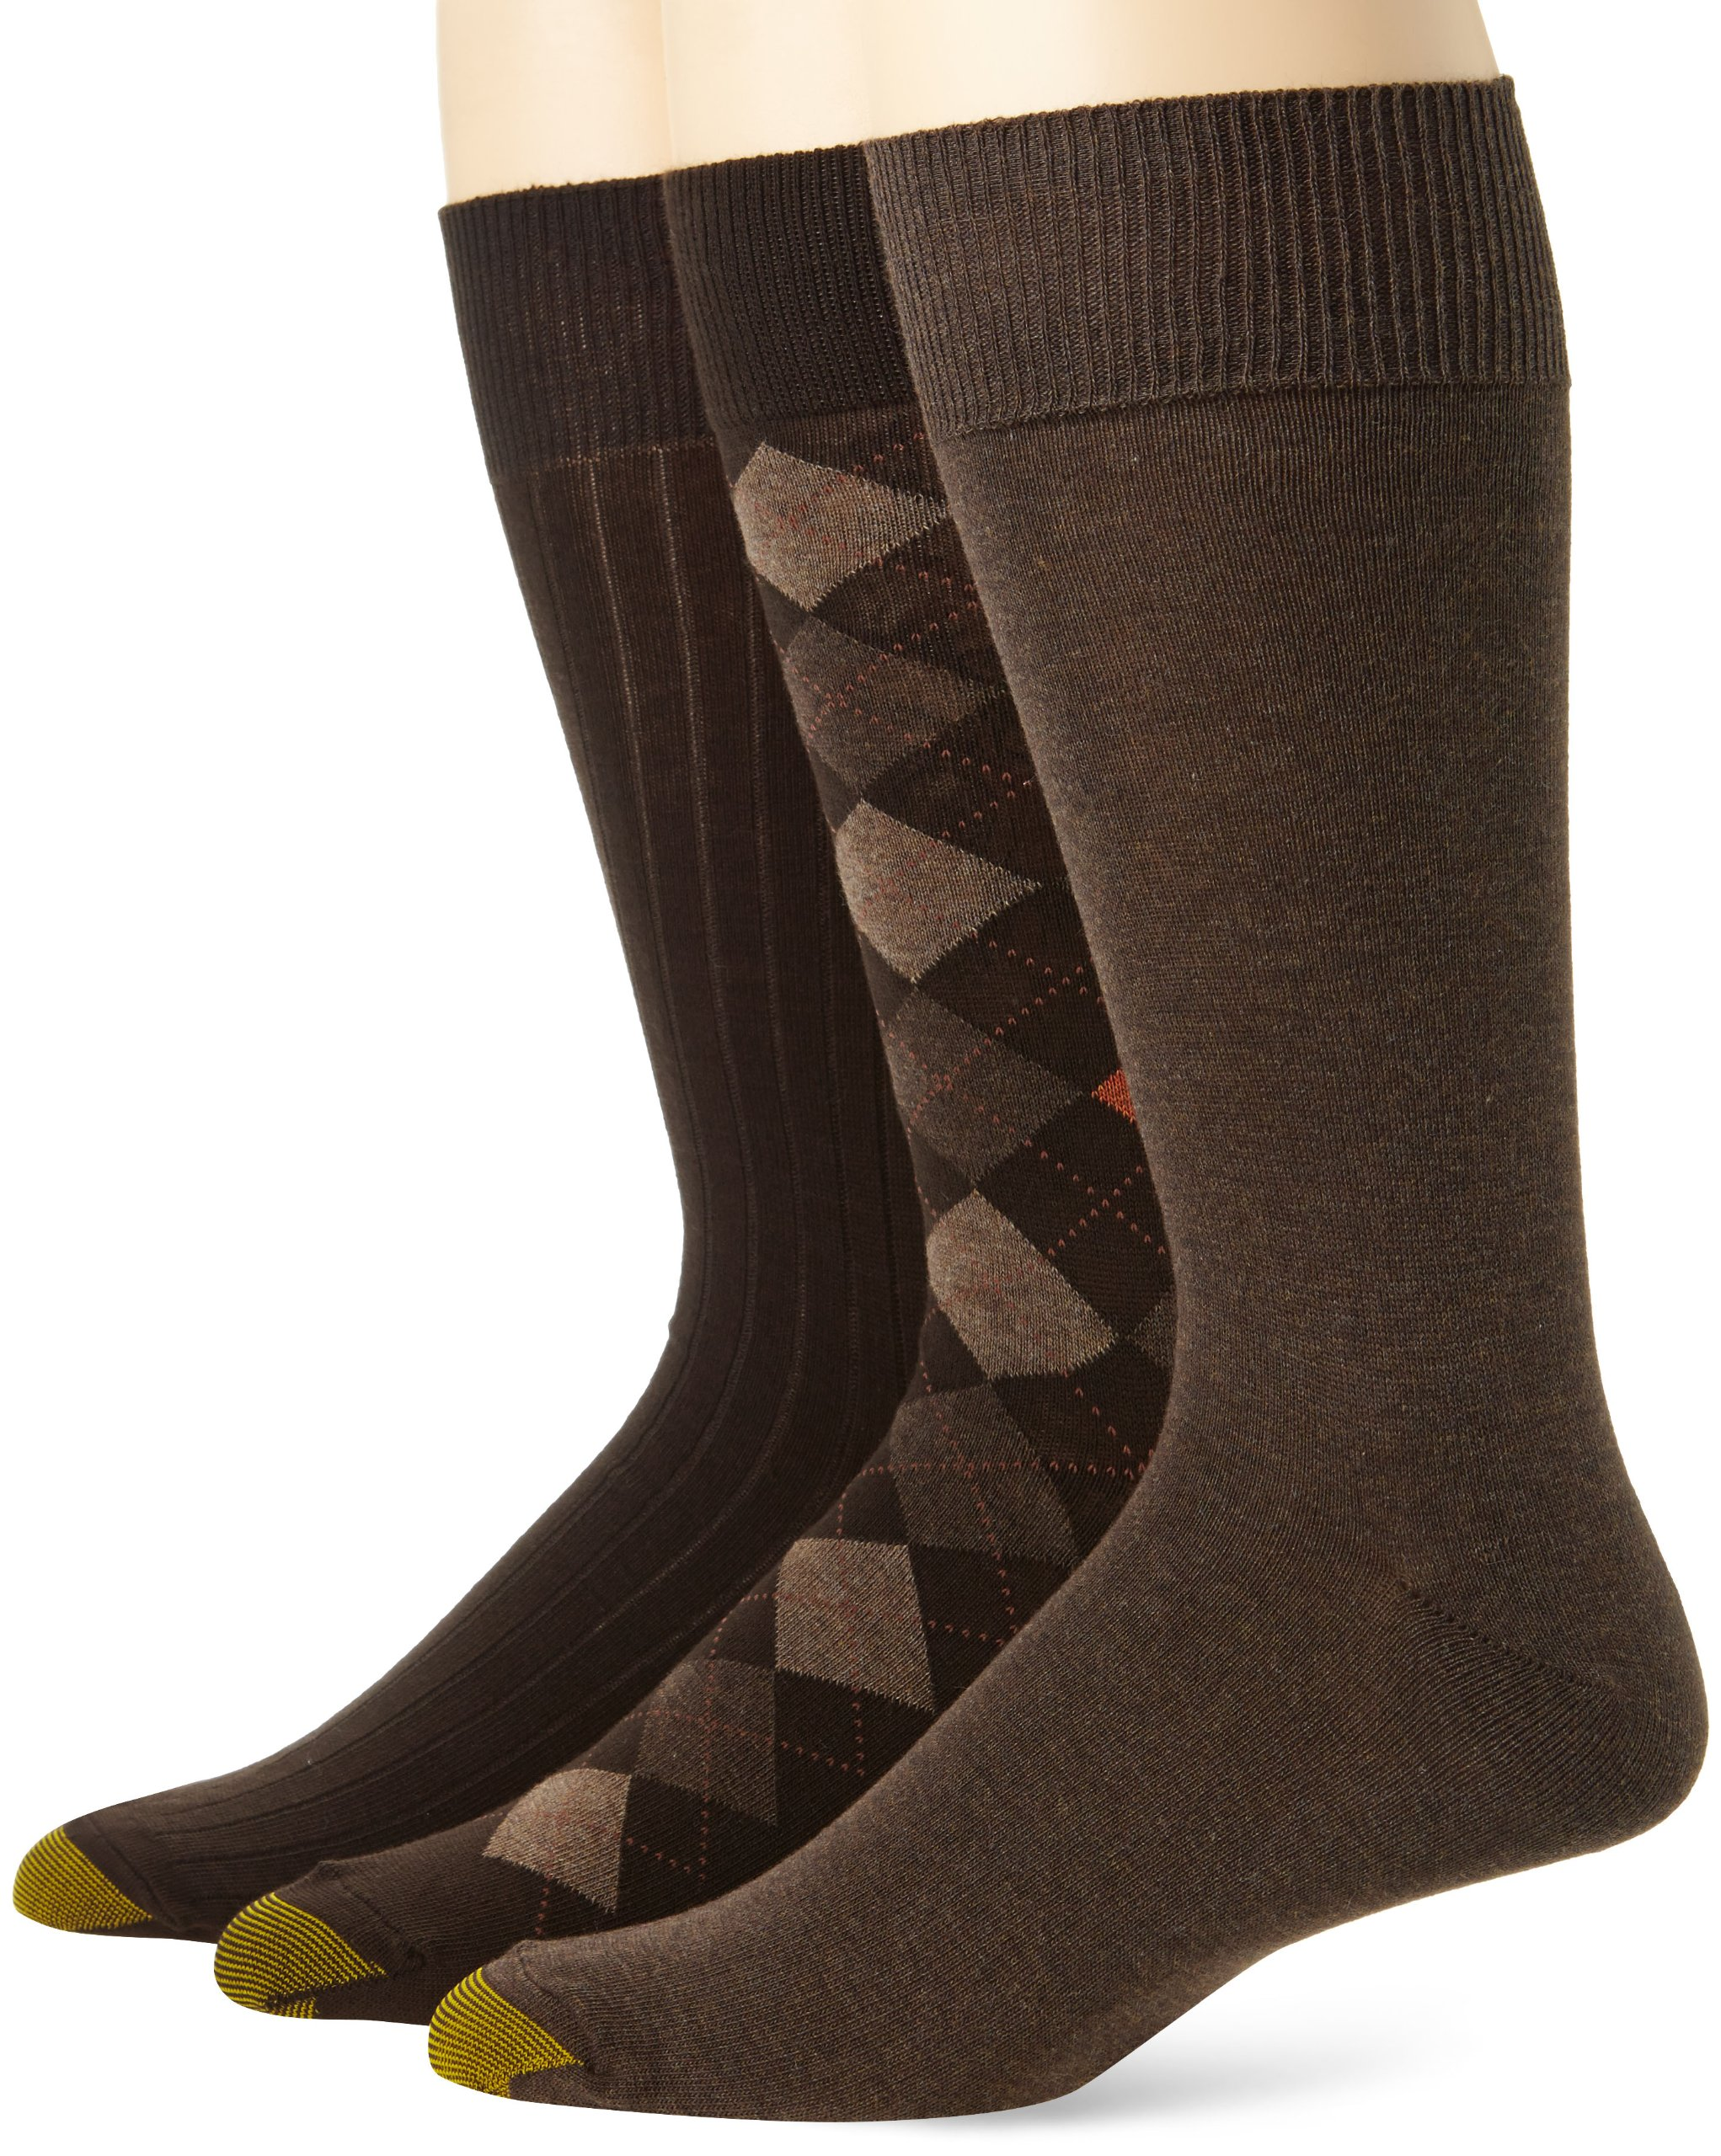 Gold Toe Men's Classic Argyle Sock, 3 Pack, Brown Diamond/Brown Heather Flat/Brown Rib,  6-12.5